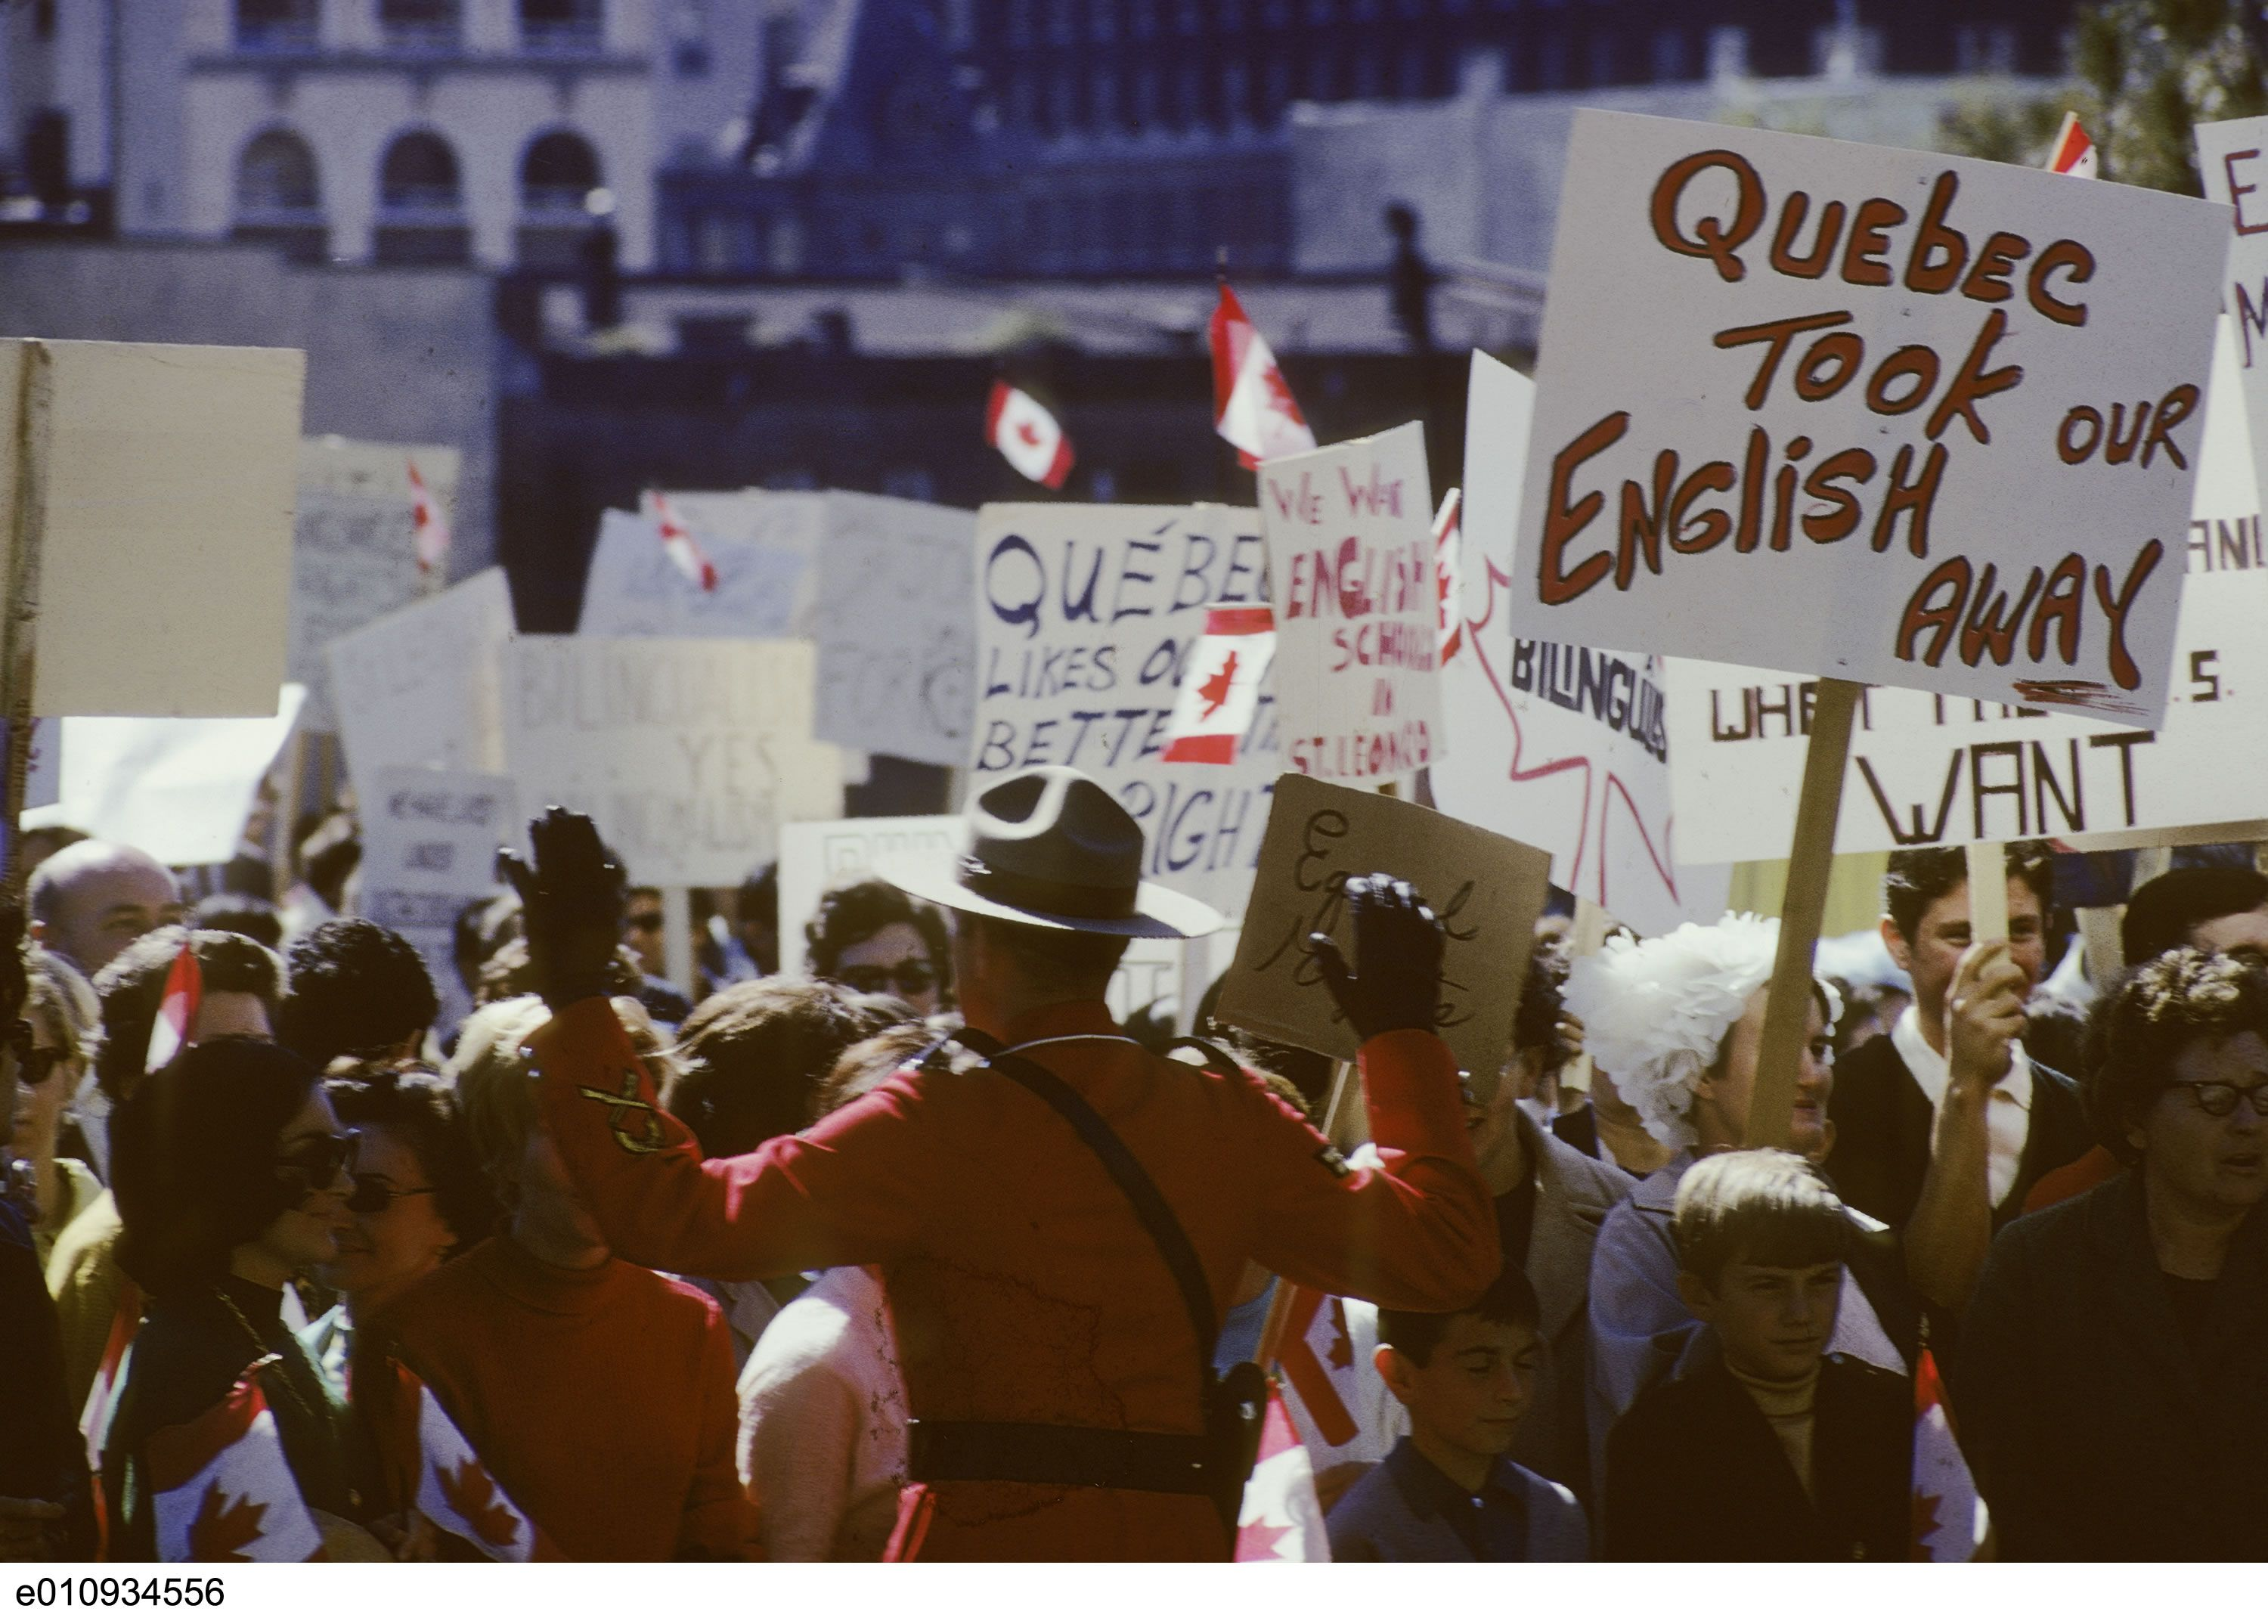 essay on the quiet revolution in quebec Also also, my i have to choose a turning point in canadian history to write a loooooooong essay about which one should i choose the quiet revolution, or the assassination pierre laporte/ quebec separatist movements.